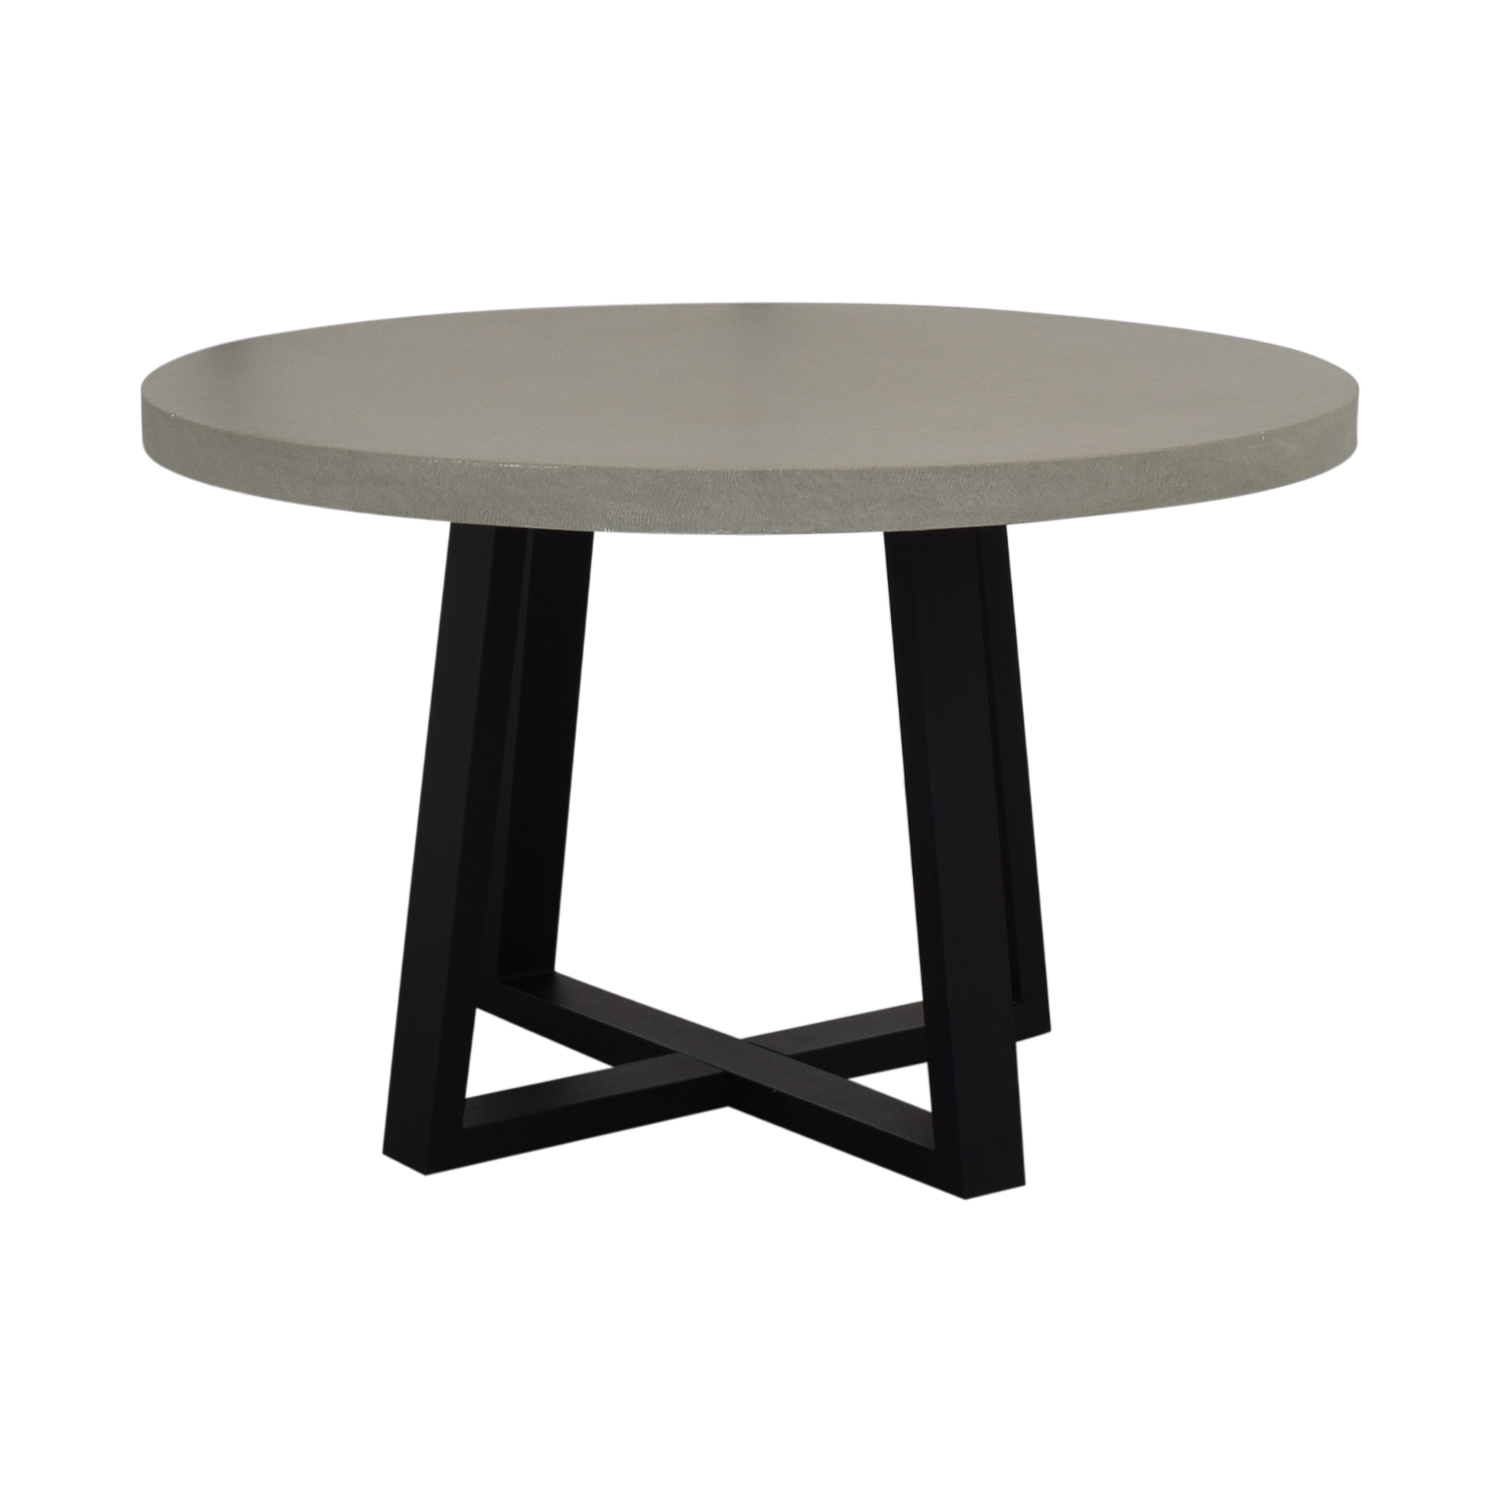 West Elm West Elm Round Slab Outdoor Dining Table for sale